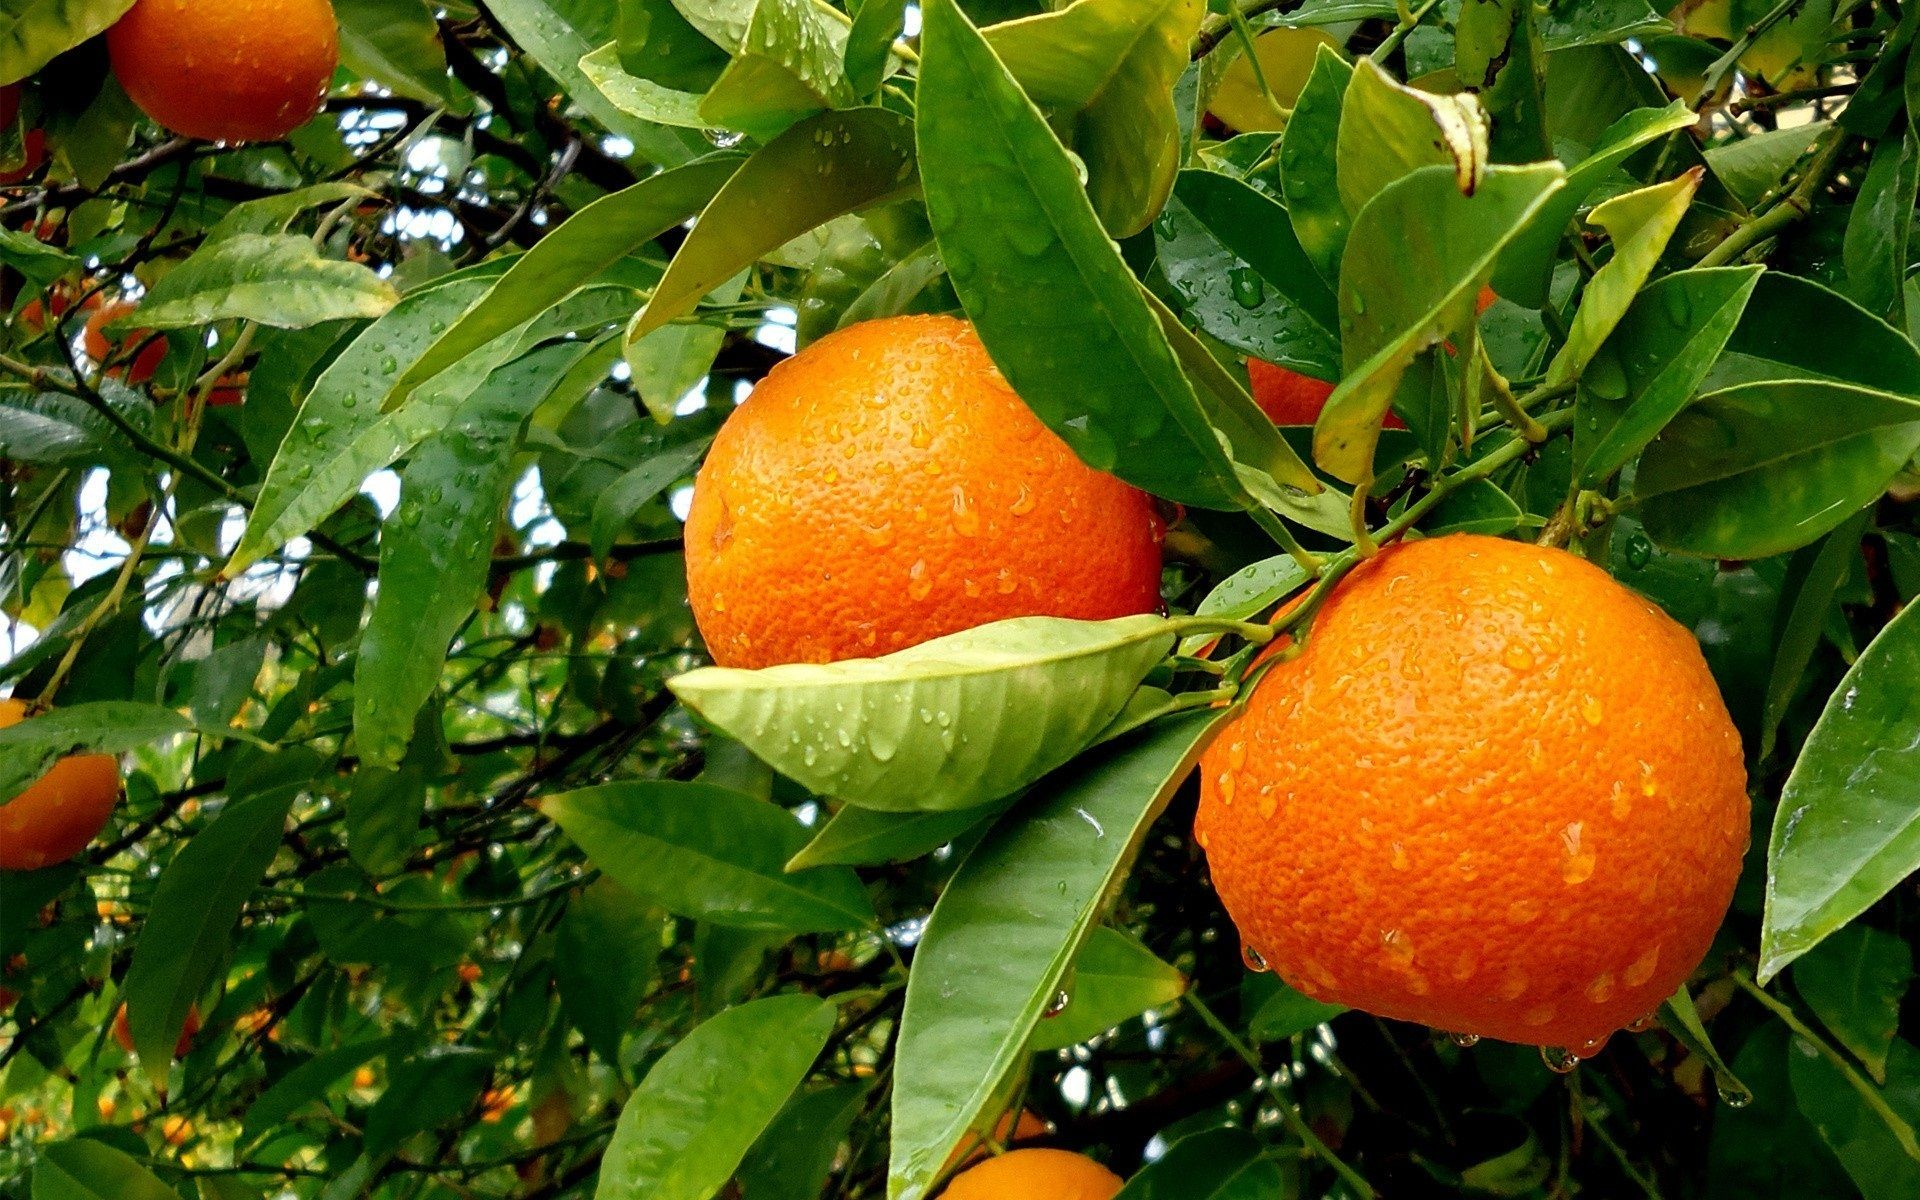 Orange Cultivation Guide Introduction Of Is One The Top Citrus Fruits Being Grown In Most Countries After Banana And